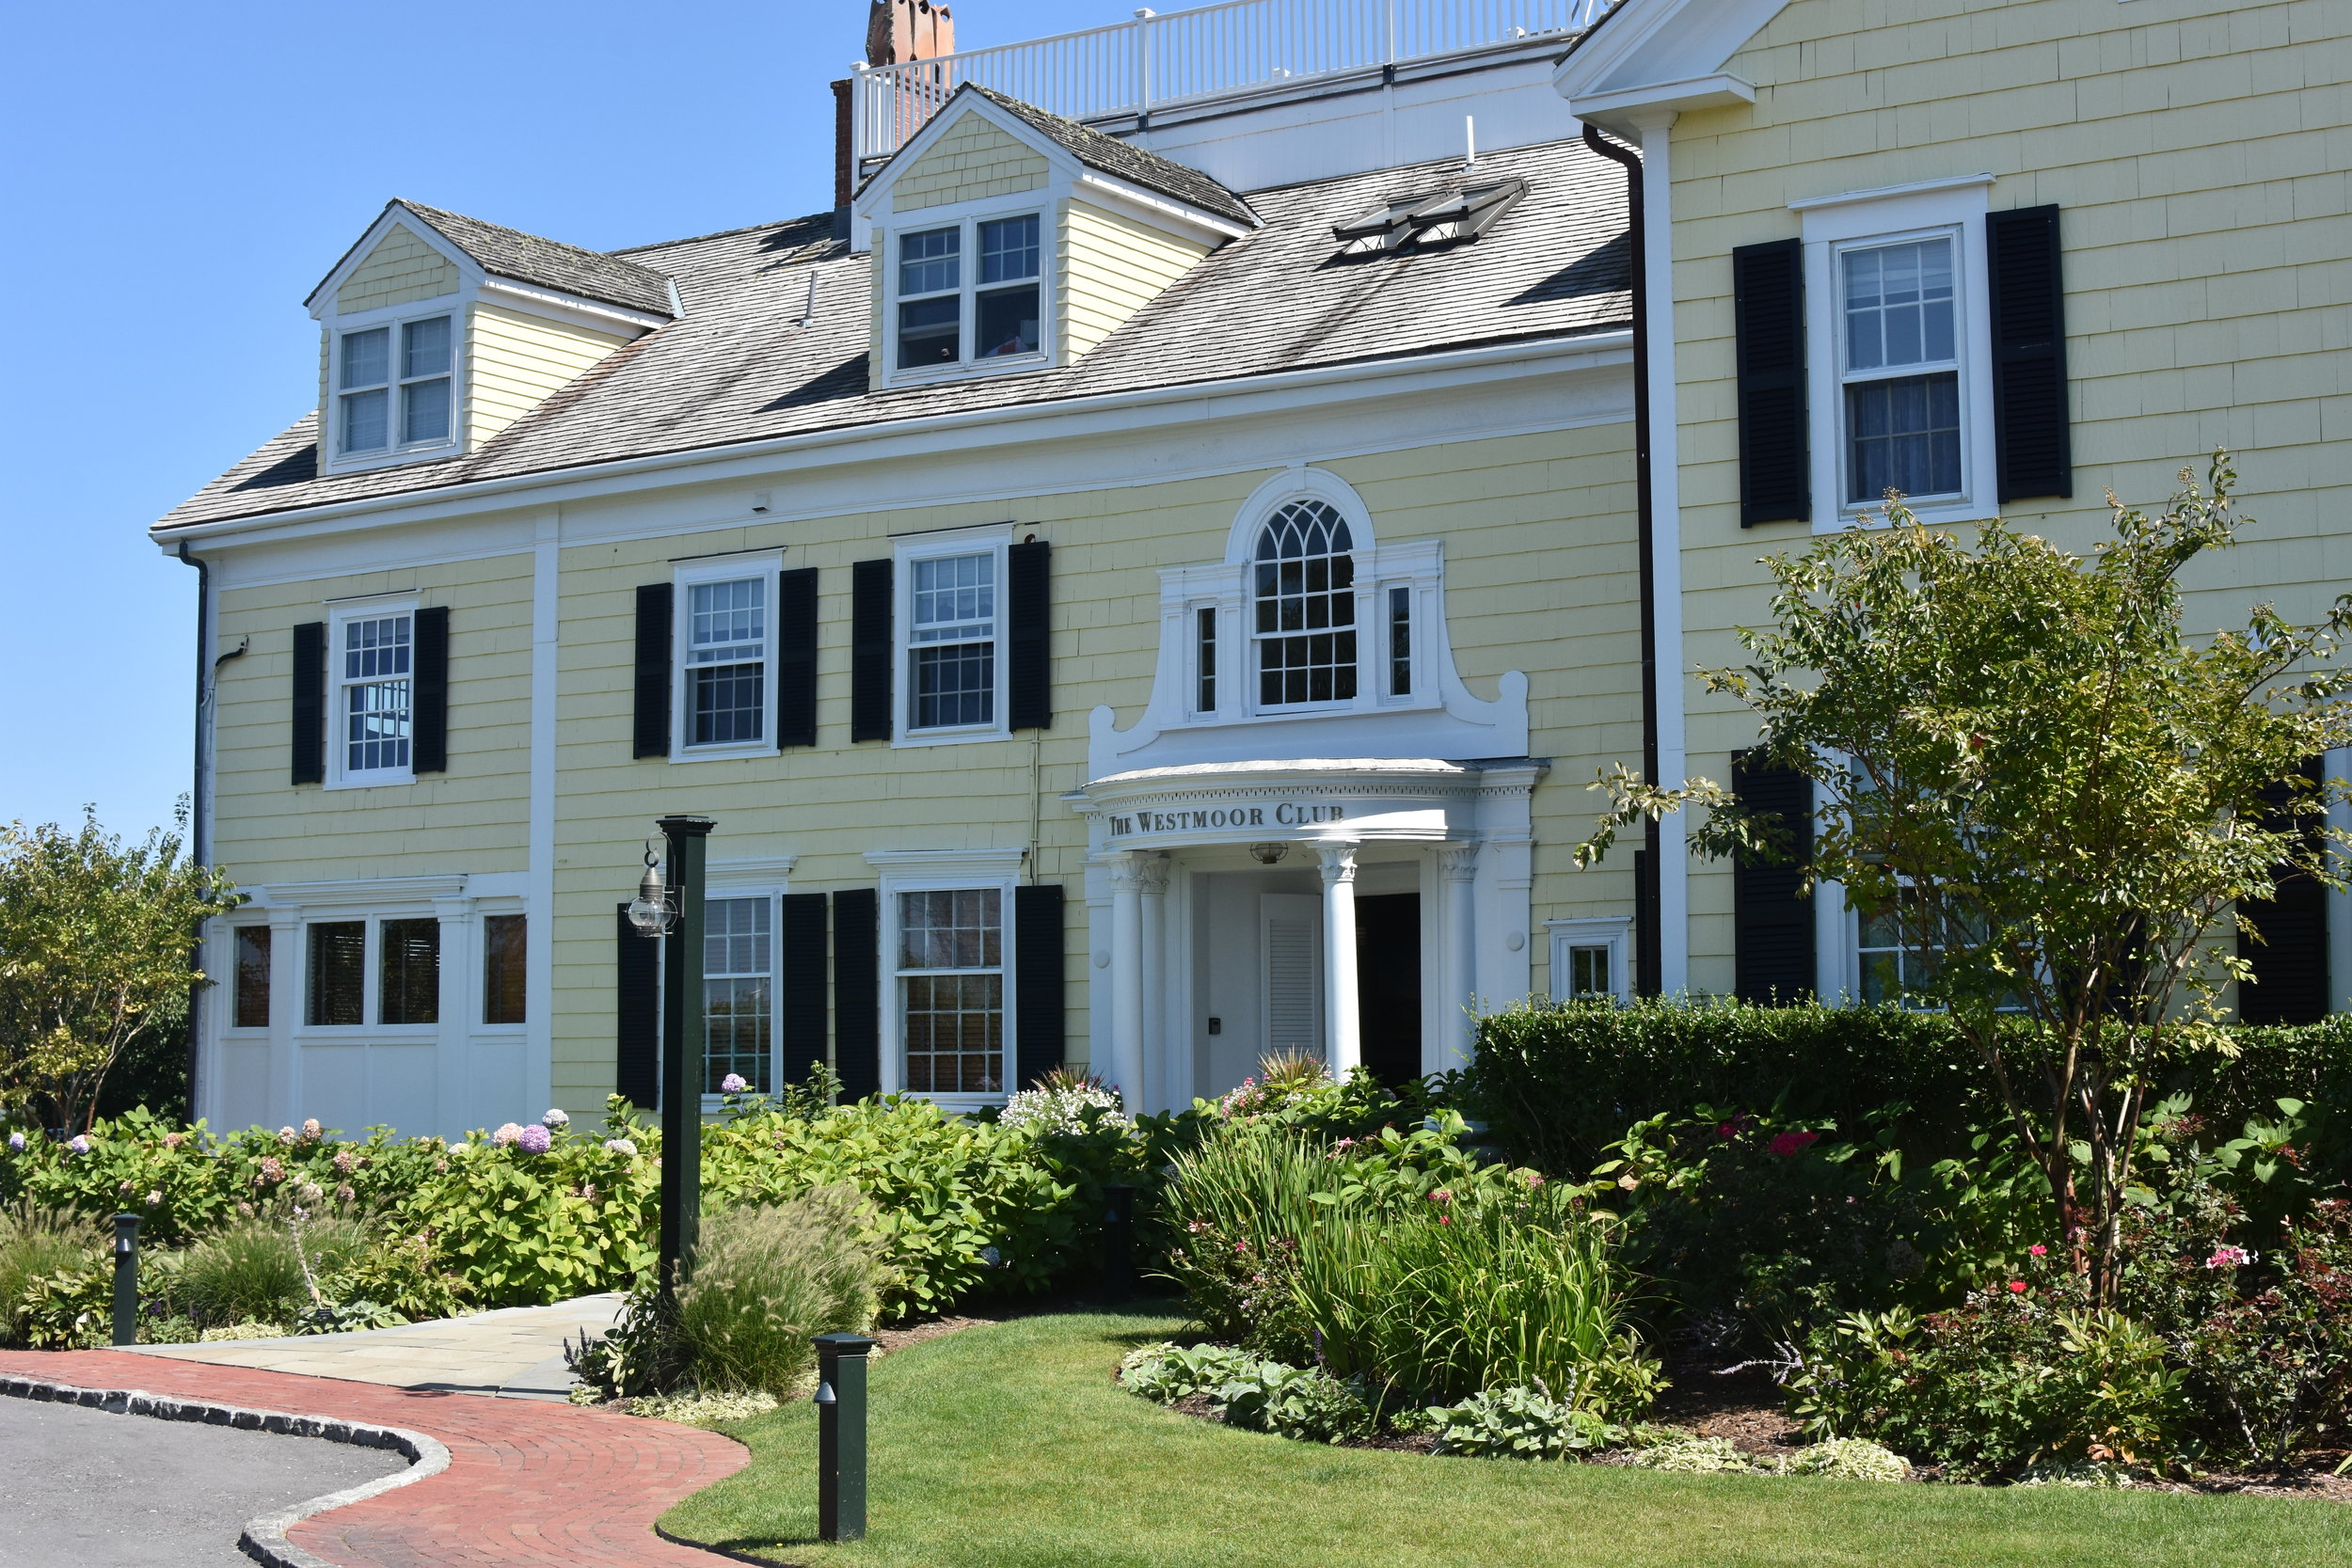 A 1917 summer home built for Alice Vanderbilt now serves as the clubhouse and guest quarters of Nantucket's  Westmoor Club .